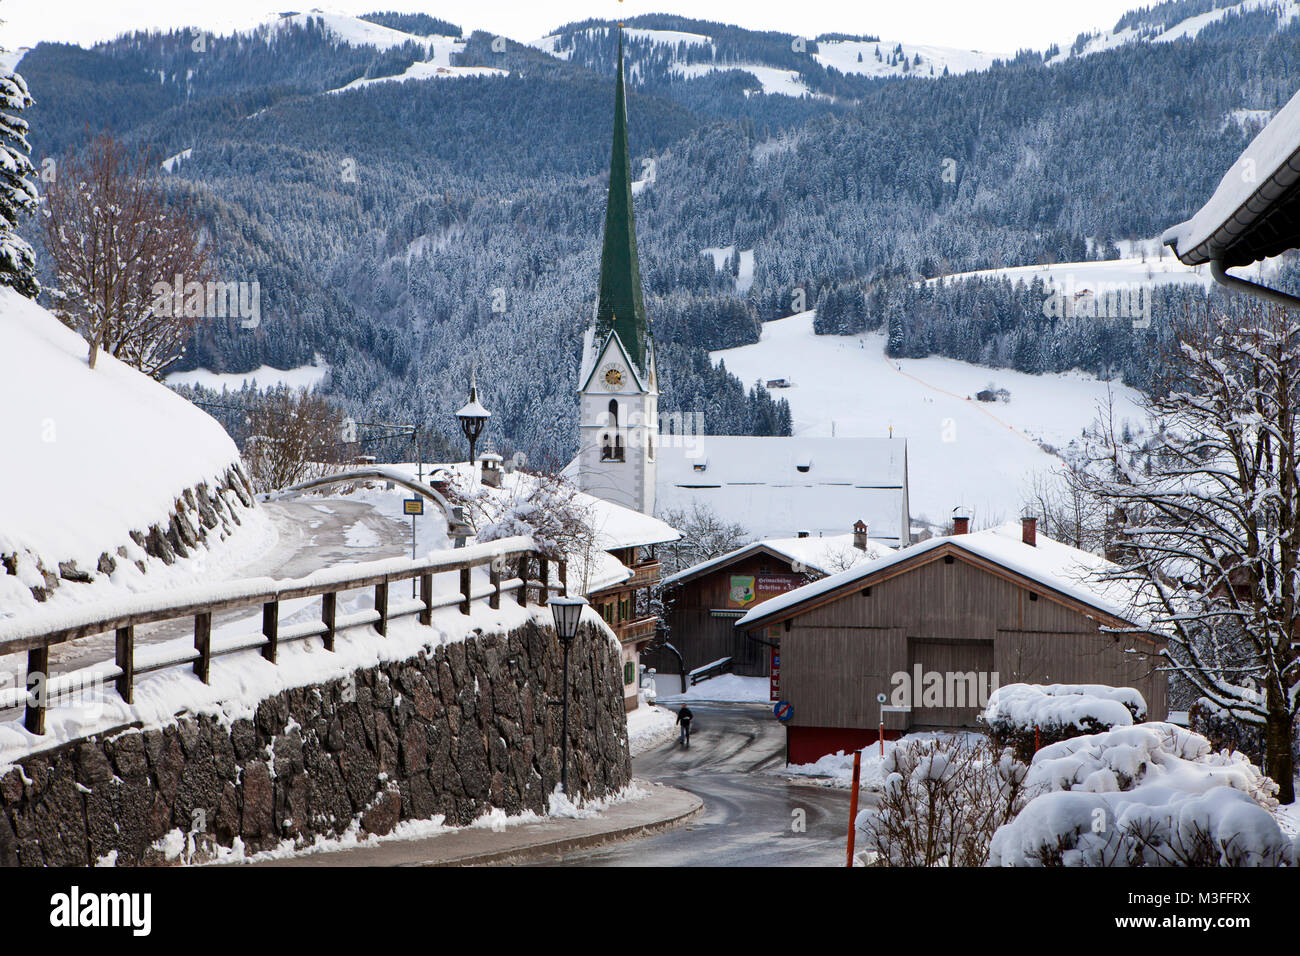 SCHEFFAU, AUSTRIA - JANUARY 18th, 2018: Ski resort of Sceffau gets govered with fresh snow. Scheffau is a pretty - Stock Image